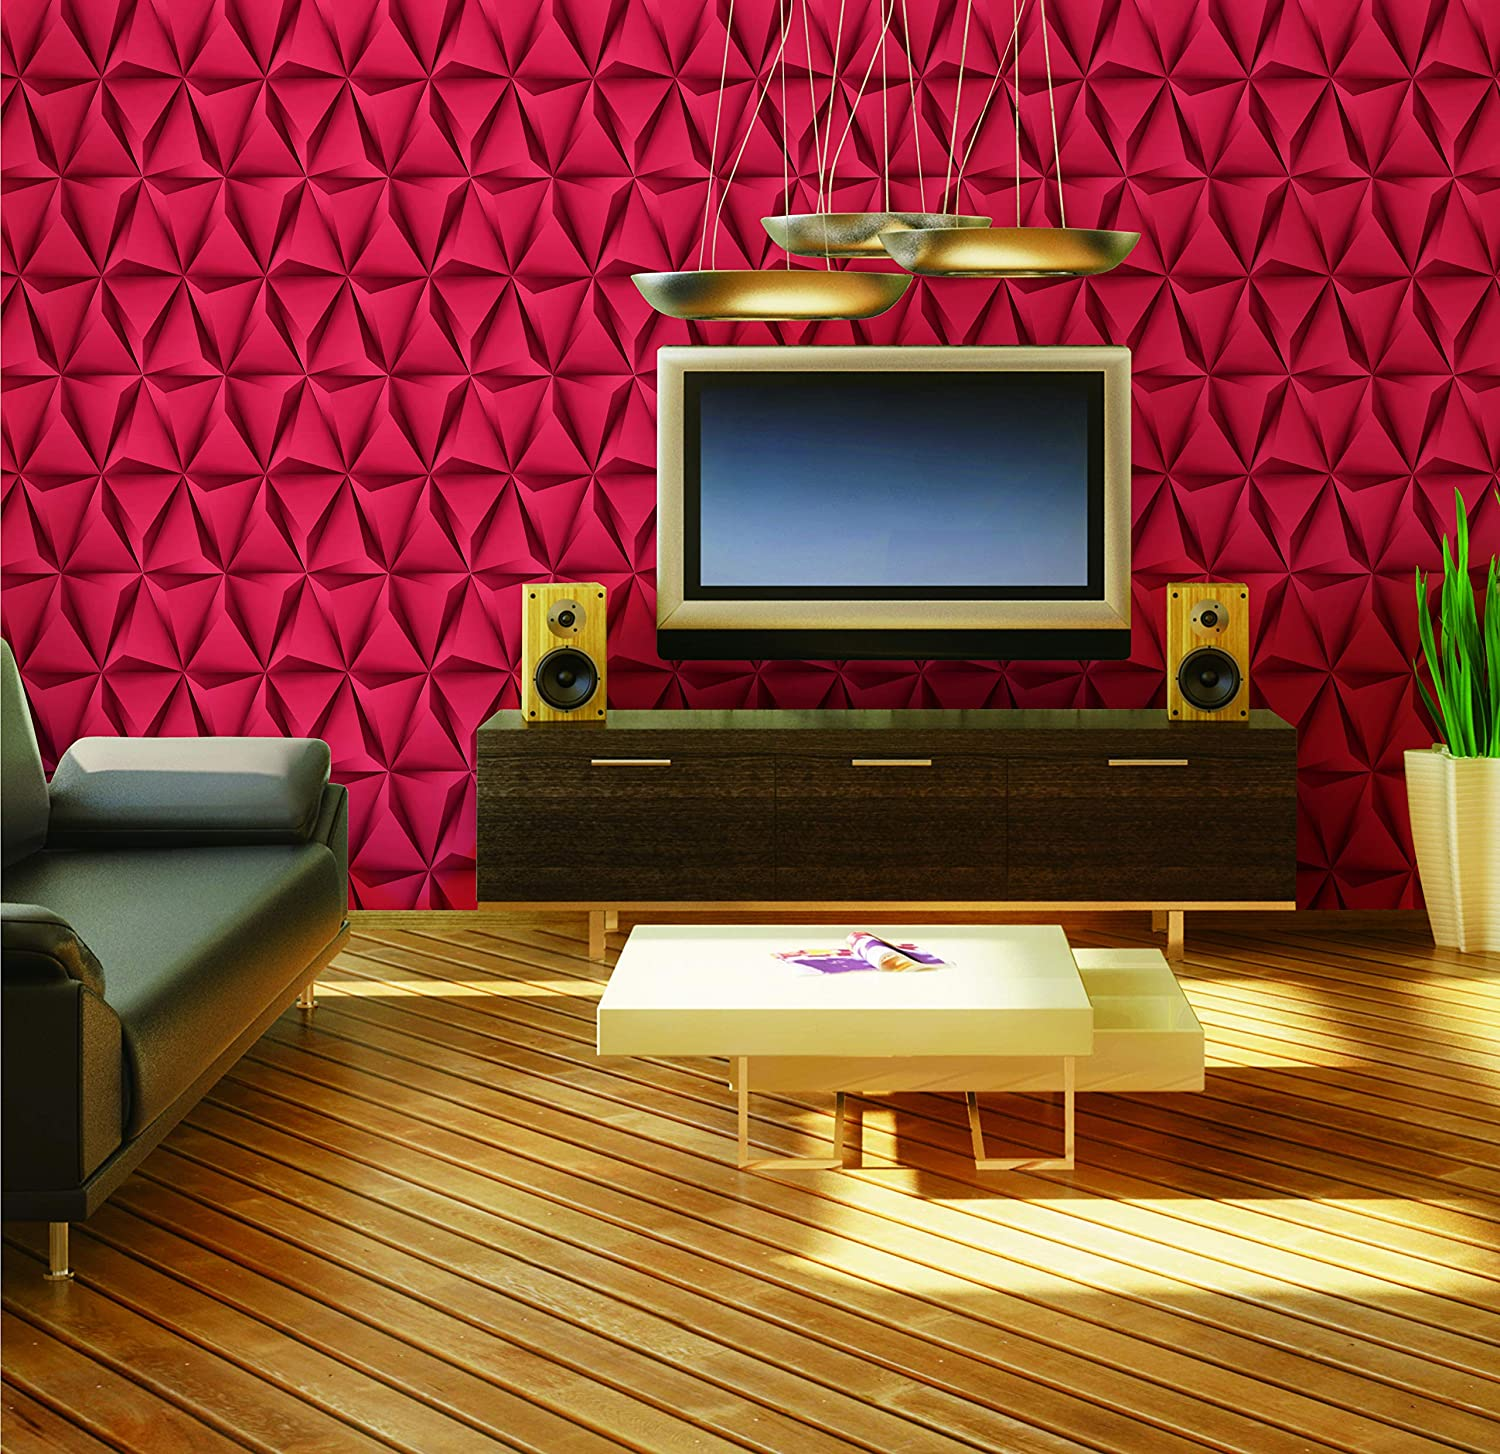 on sale cbac9 e416d Buy Eurotex 3D Red Prism Designer PVC Wallpaper for Bedroom   Living Room,  1 roll 57 sq ft (53 x 1000cm) Online at Low Prices in India - Amazon.in